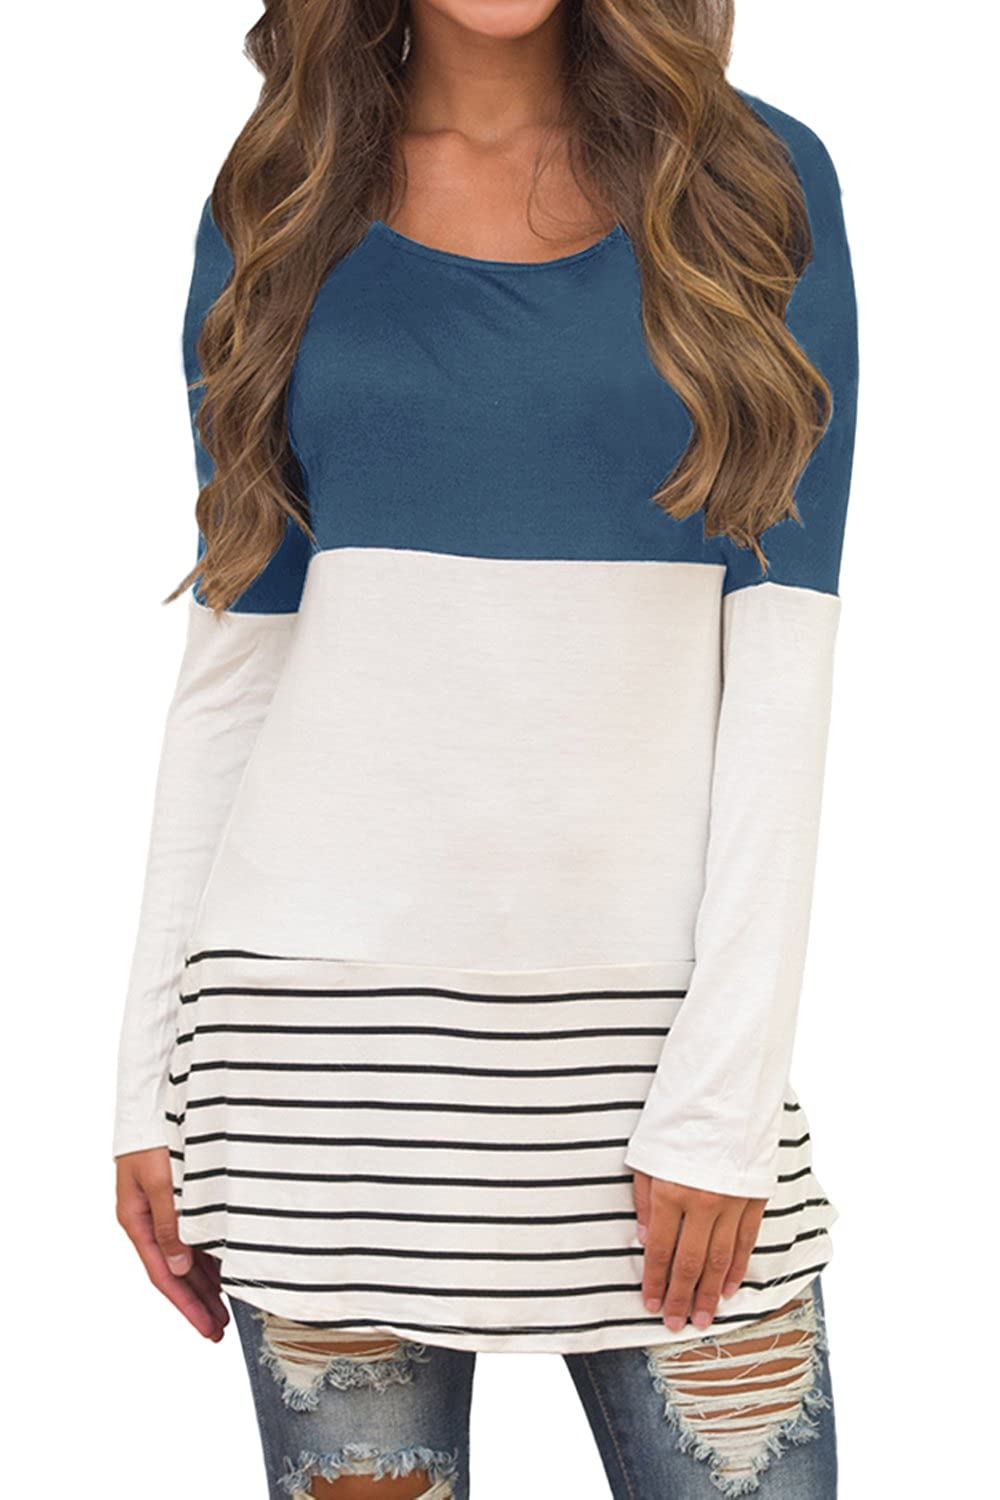 bluee Shepink Women's Long Sleeve color Block Shirts Tunics Tops with Potcket